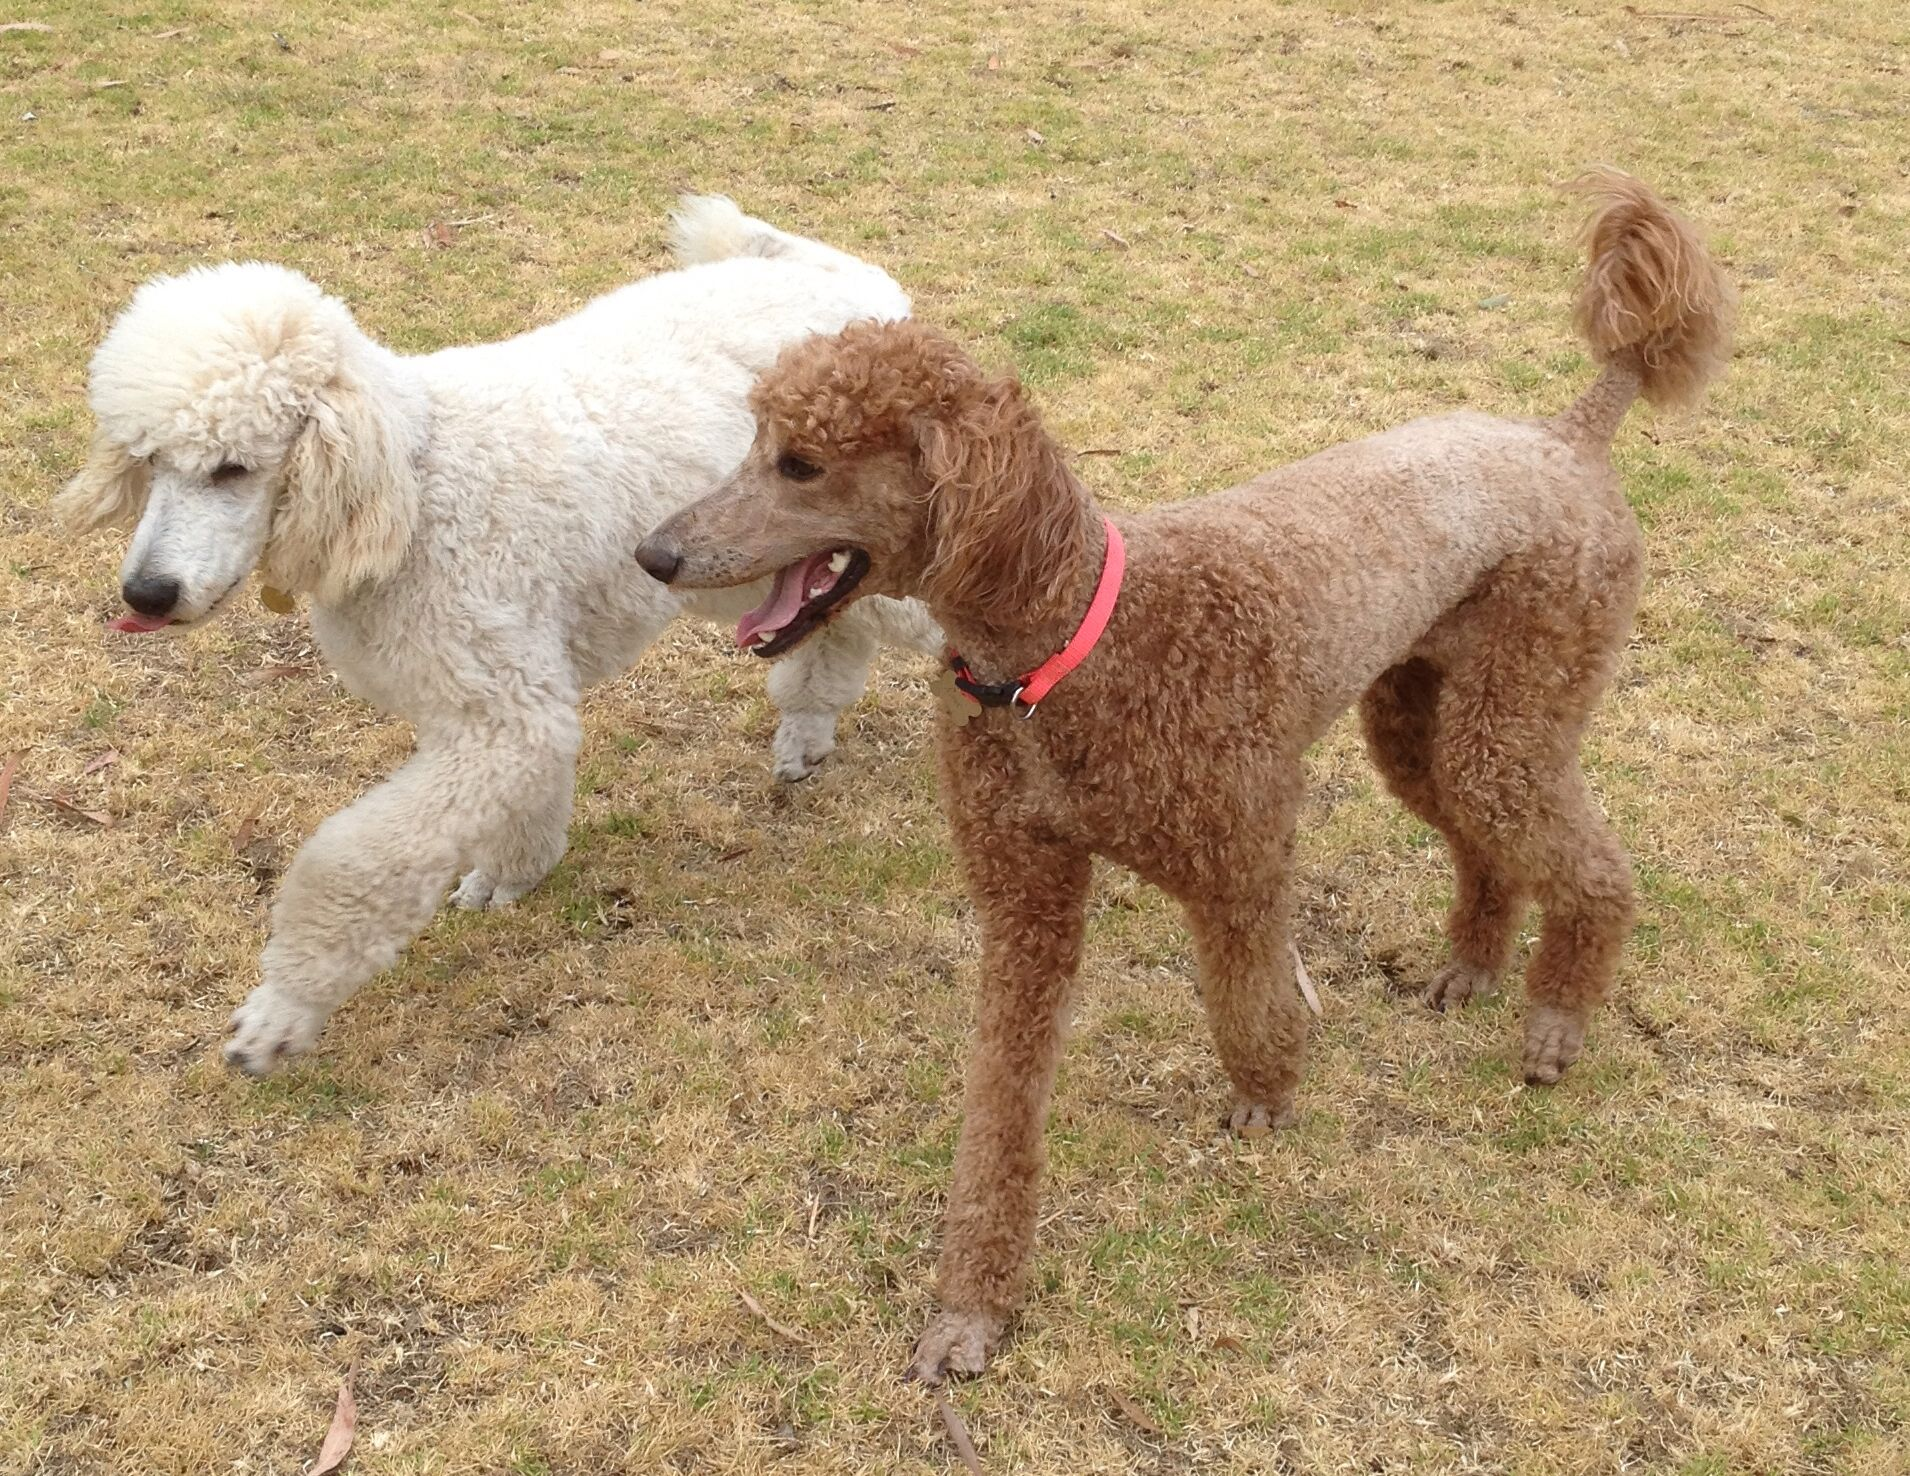 Rafi and Rosie. I love dogs, Poodle, Standard poodle